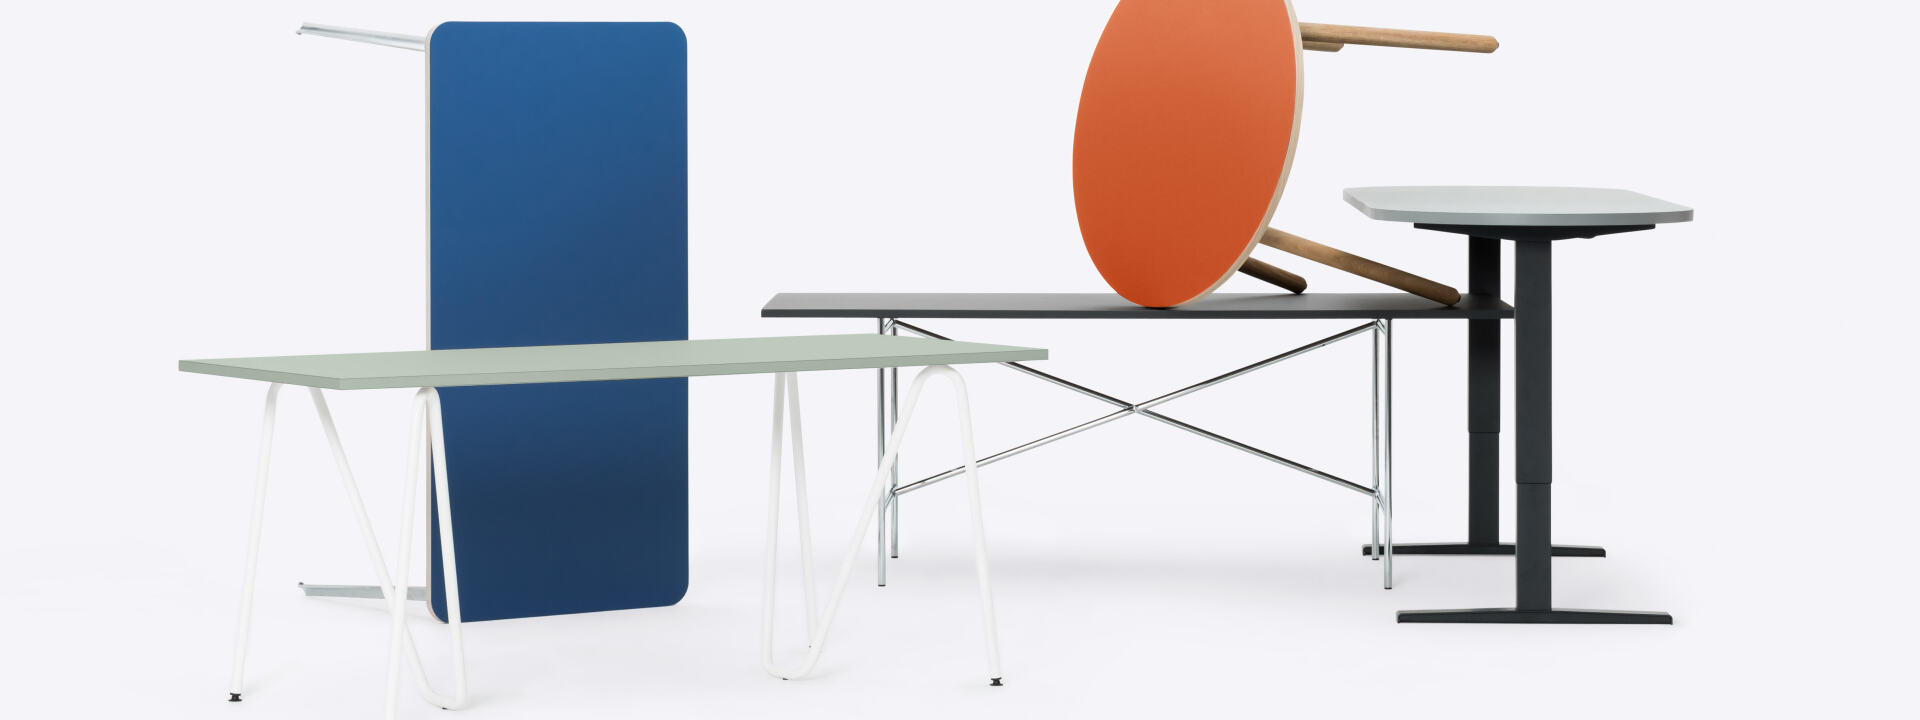 Home, Tabletops, Tables, Table Frames, Seating Systems, Office & Home, Accessories